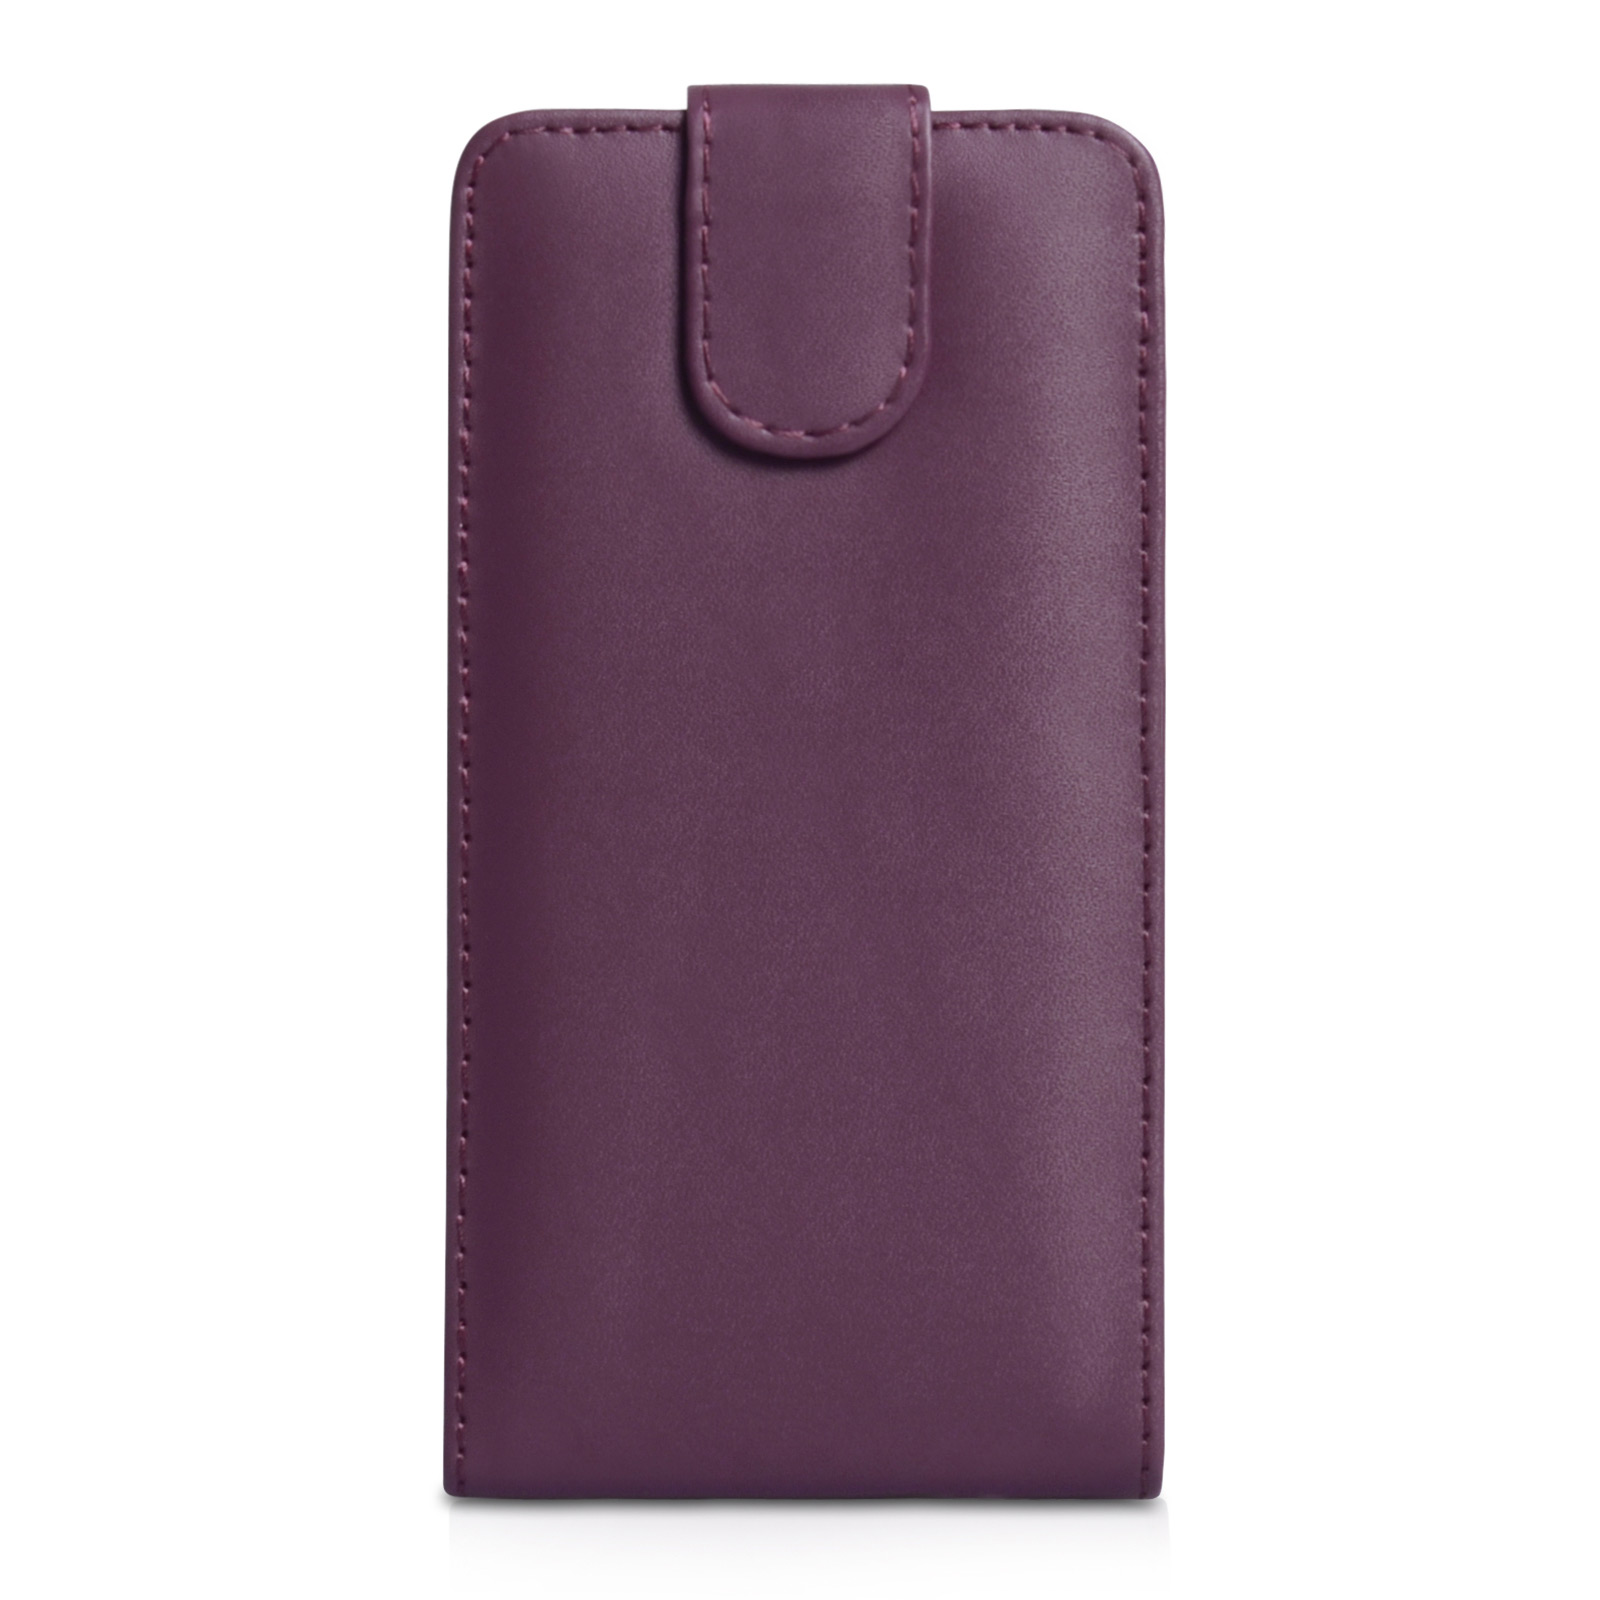 YouSave Accessories Sony Xperia Z2 Leather-Effect Flip Case - Purple